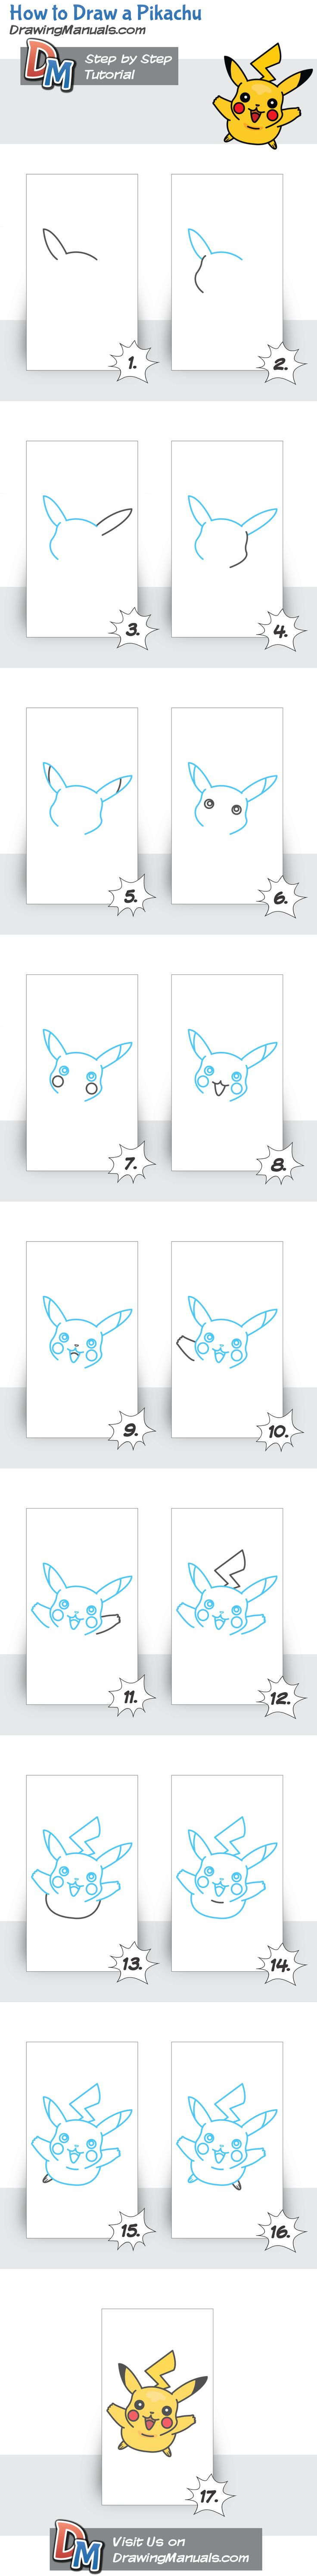 How to Draw Pikachu http://drawingmanuals.com/manual/how-to-draw-a-pikachu/ #drawing #tutorials #